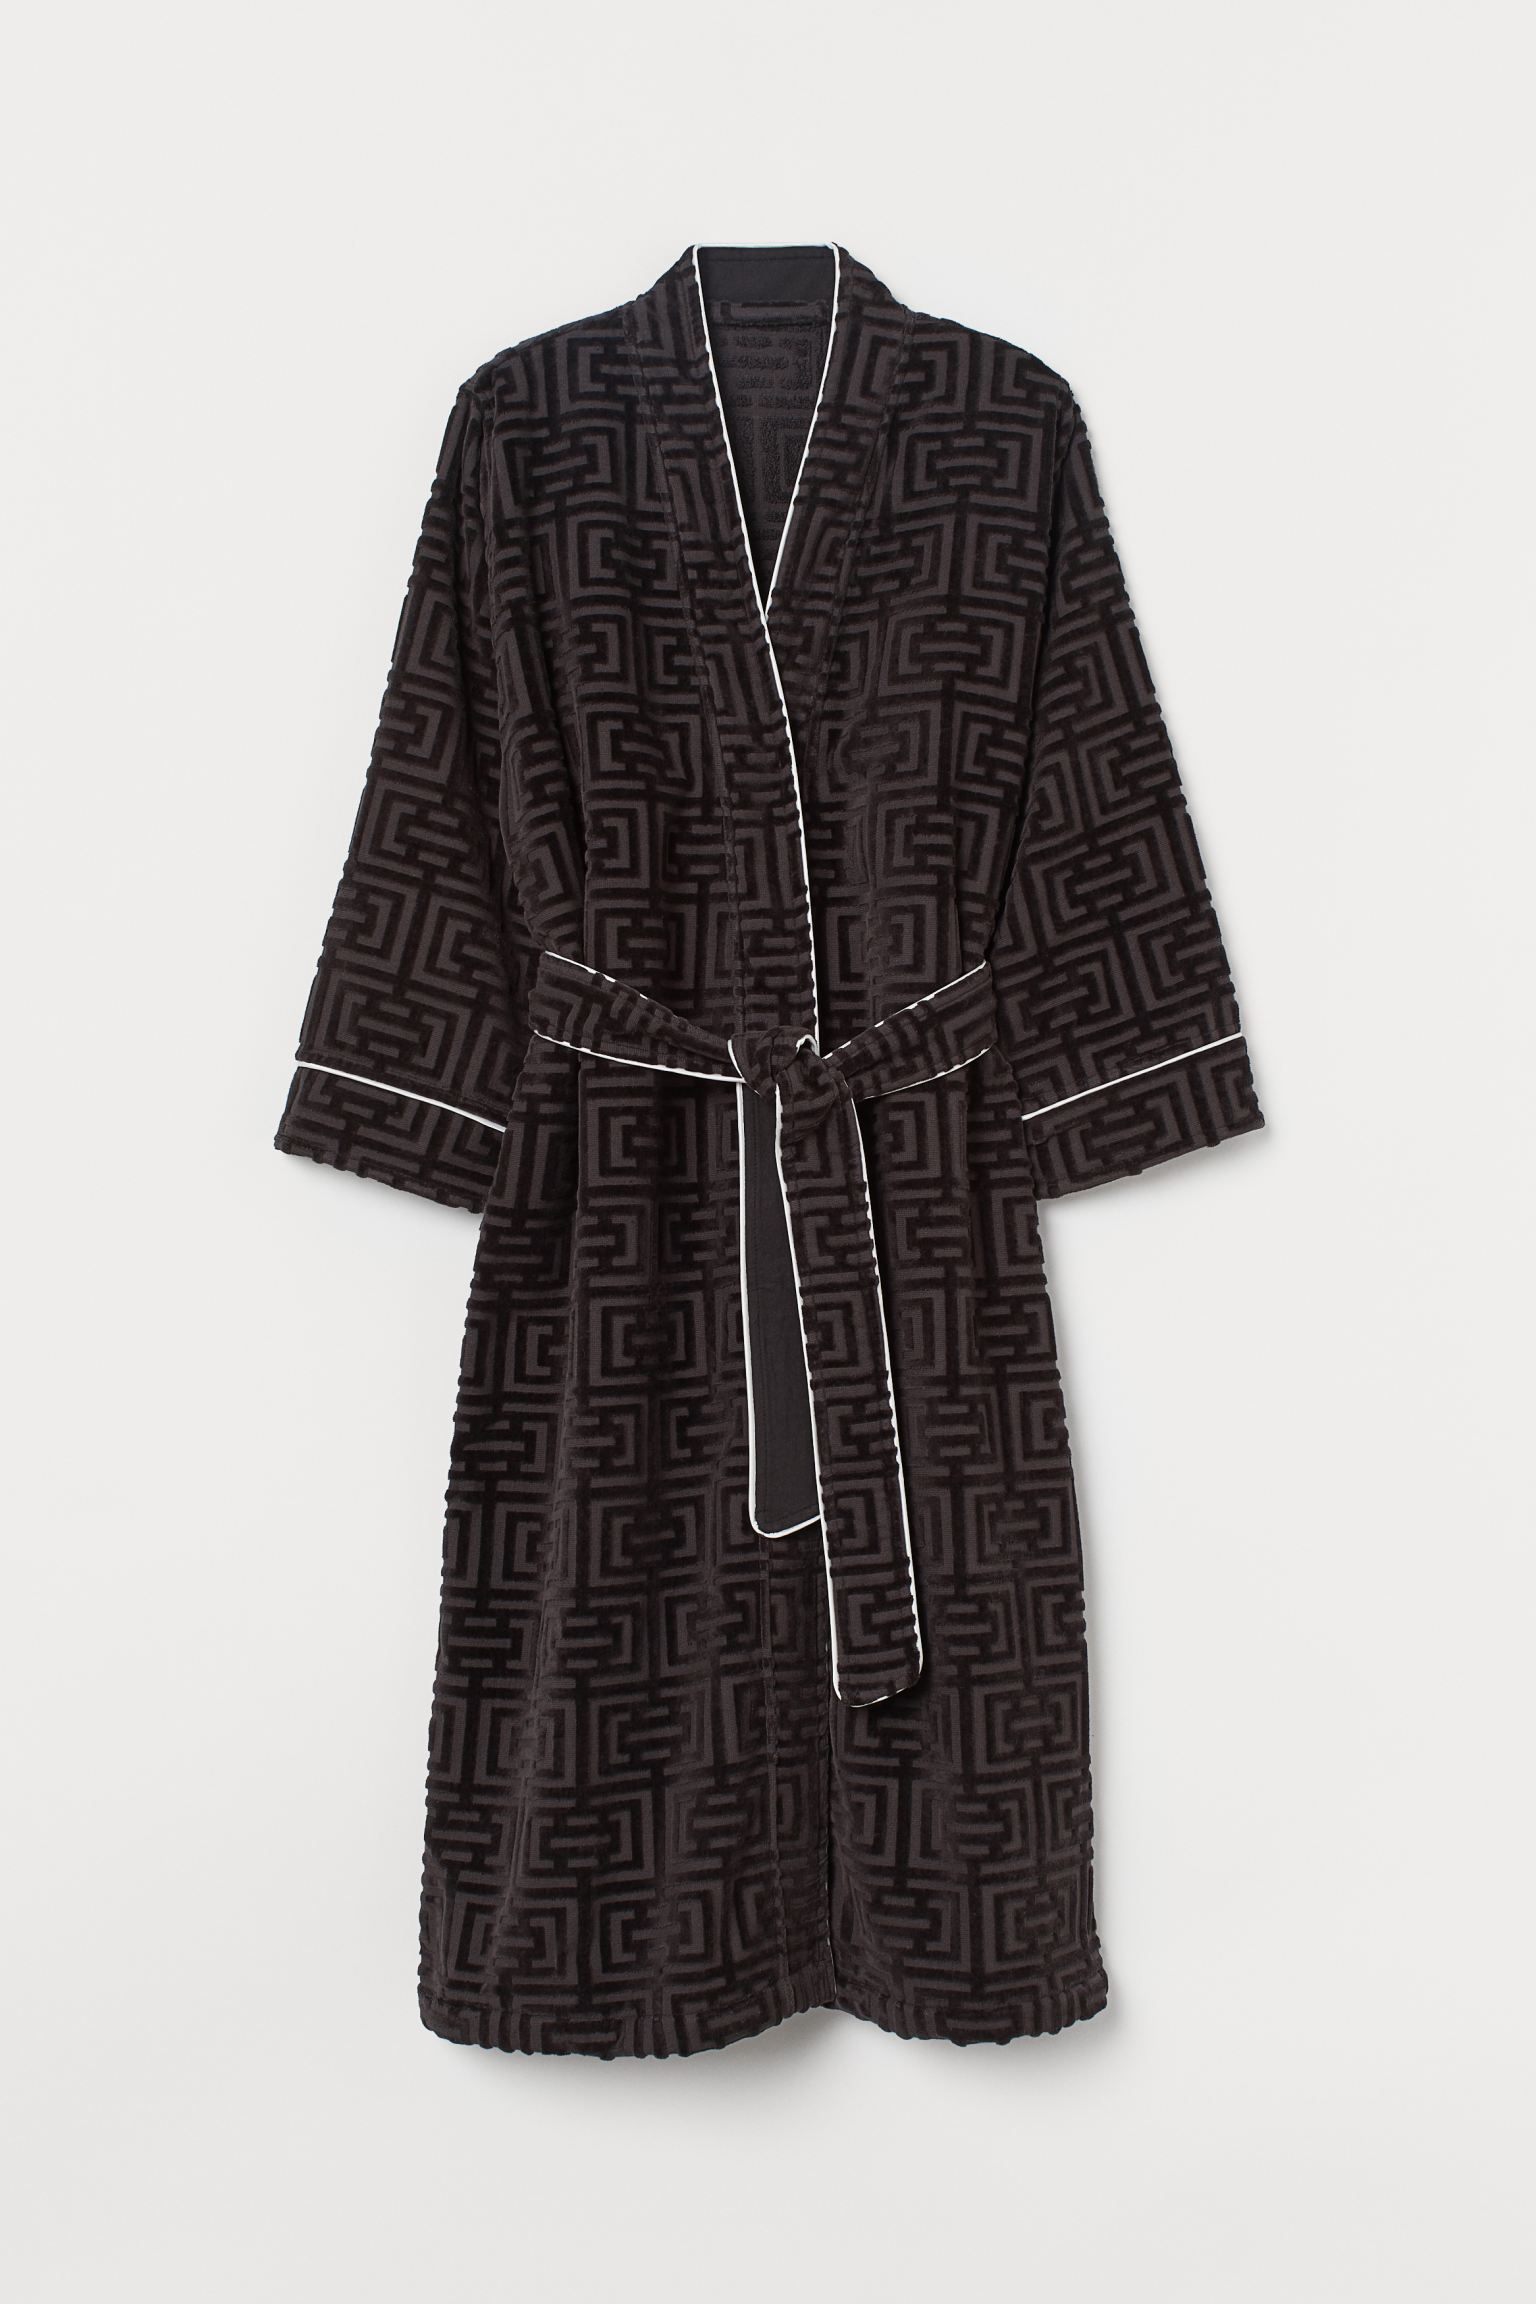 Jacquard-weave dressing gown H&M